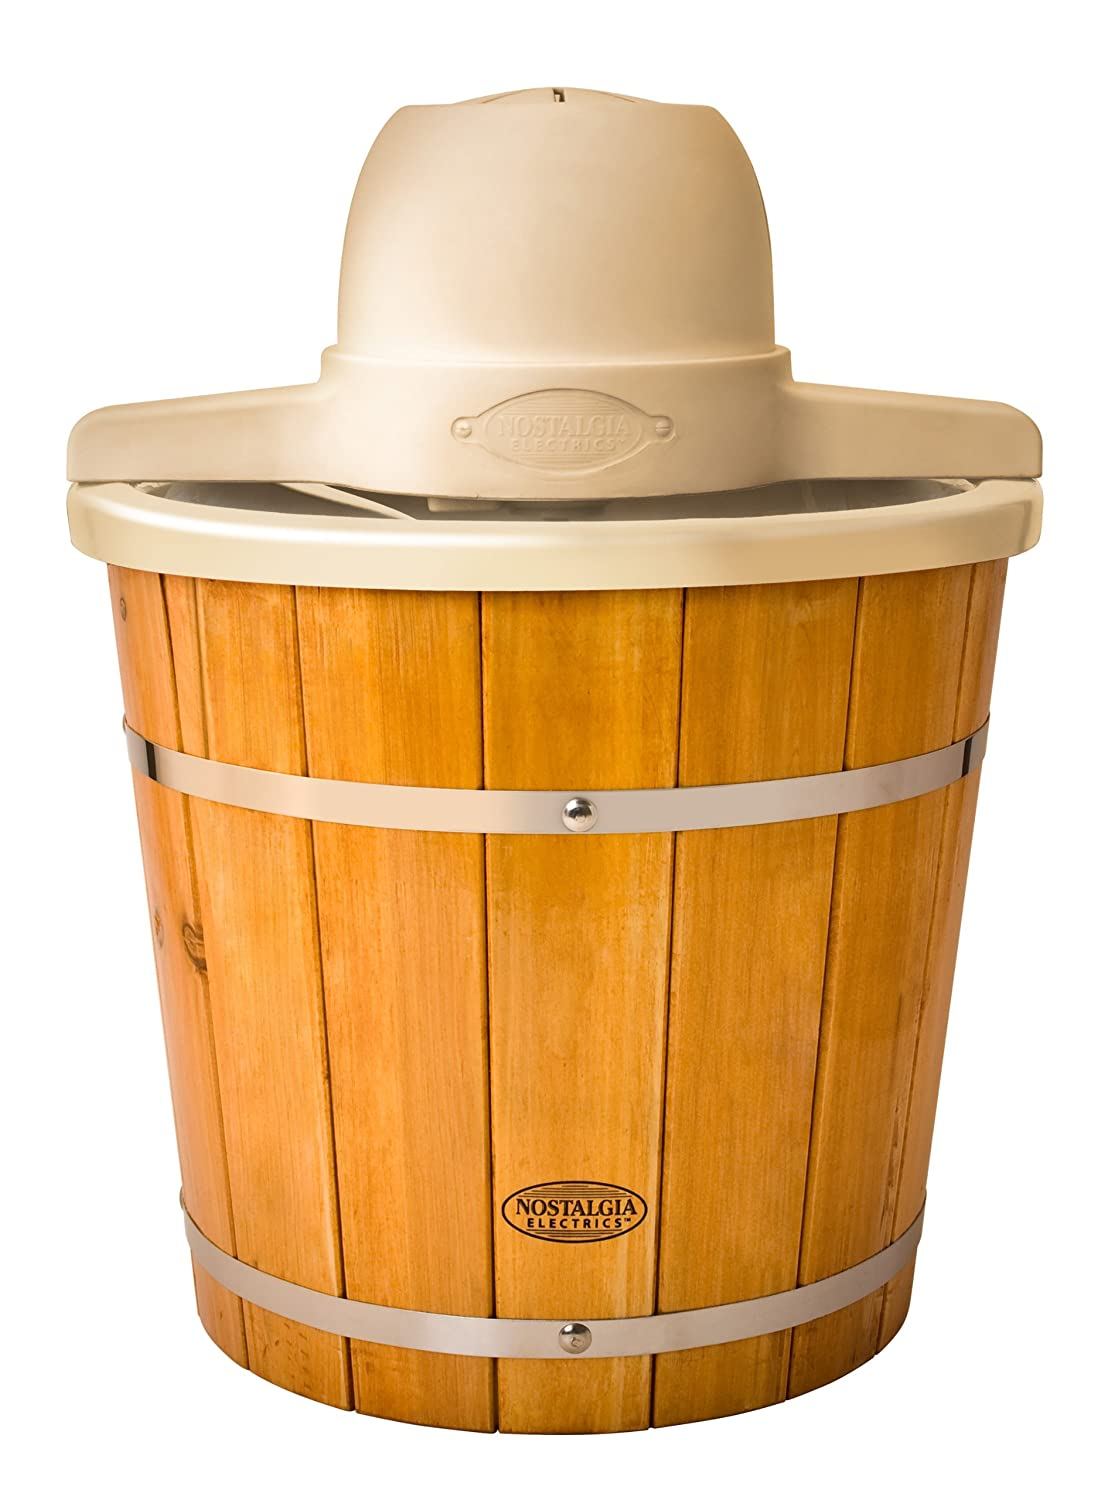 Nostalgia ICMP400WD Vintage Collection 4-Quart Wood Bucket Electric Ice Cream Maker with Easy to Clean Liner